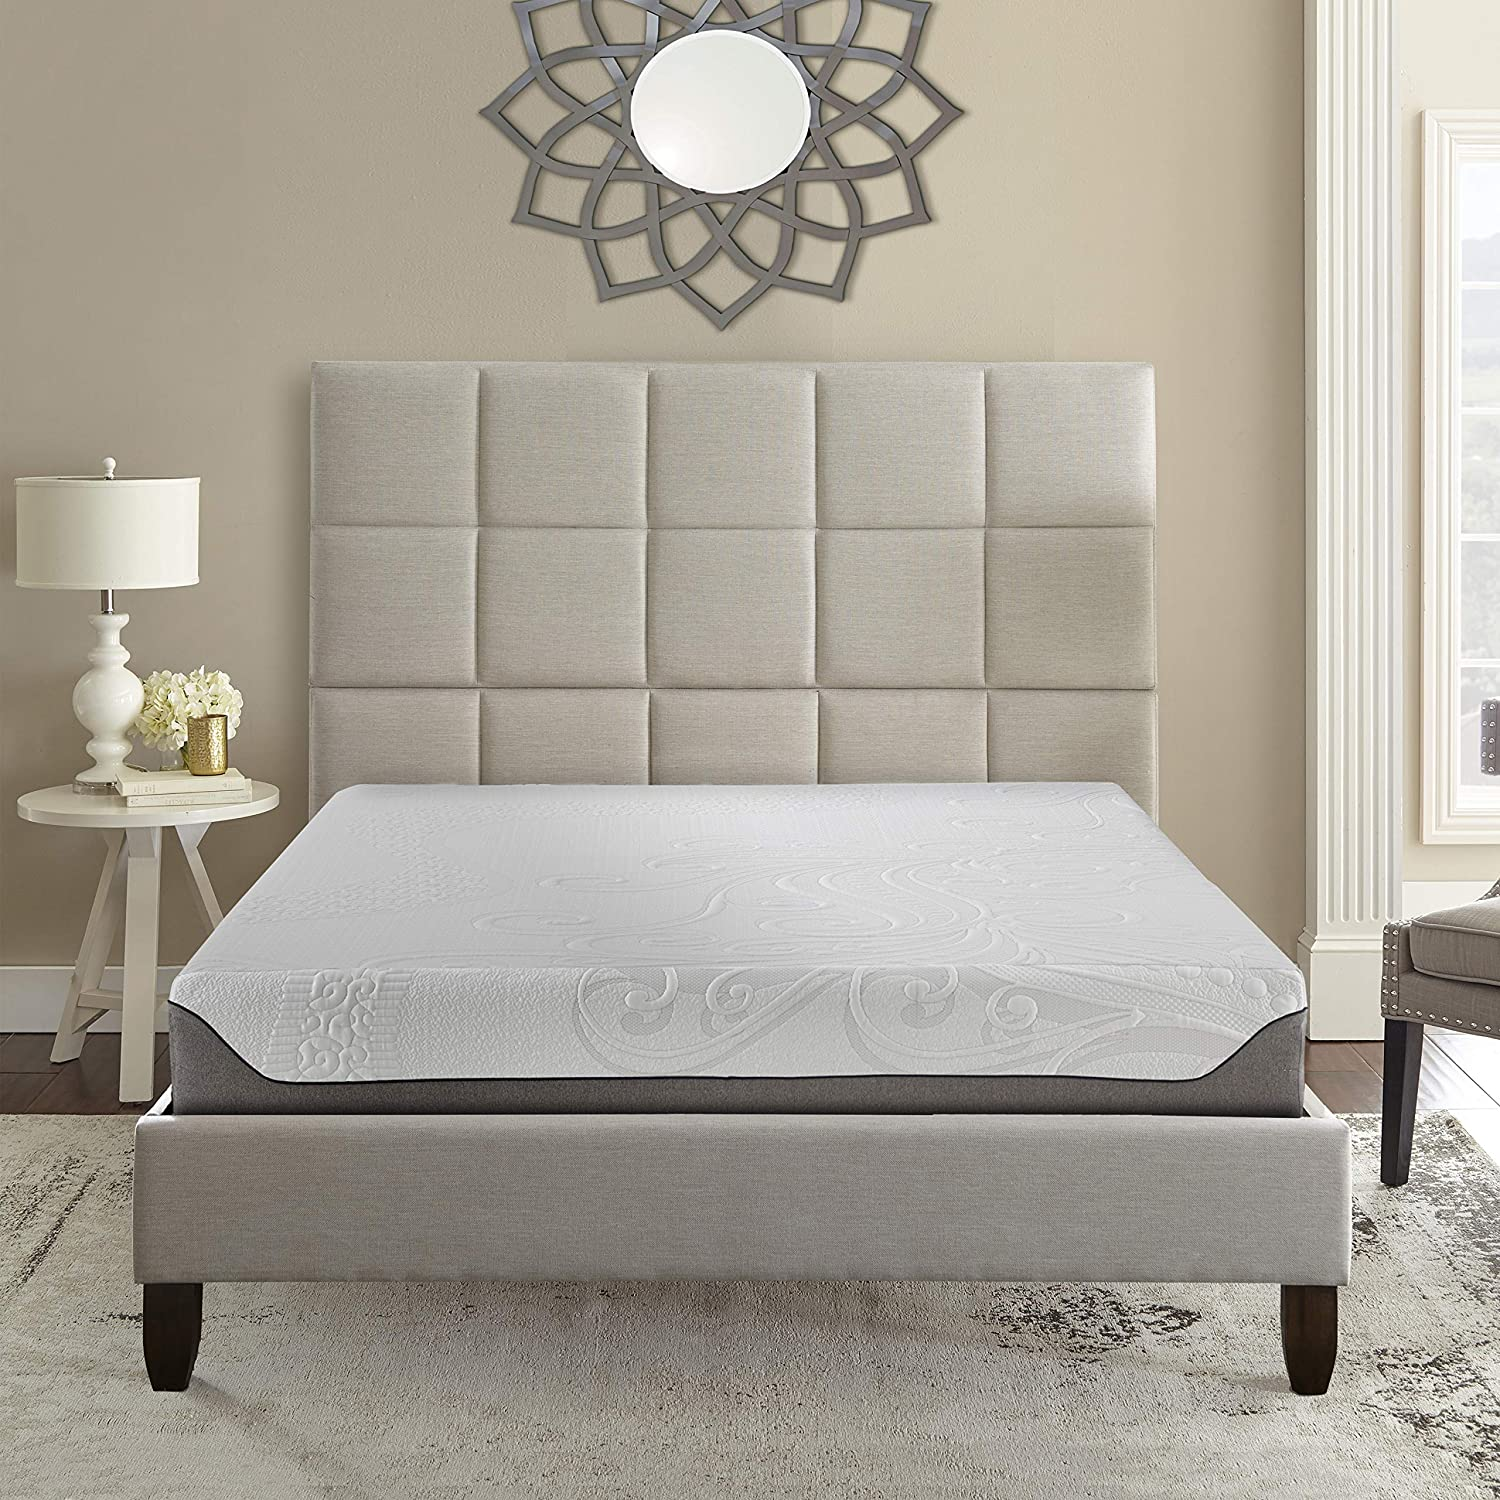 Boyd Sleep Cooling Air Flow Gel Memory Foam Mattress with IceLux Cover, 10 Twin XL